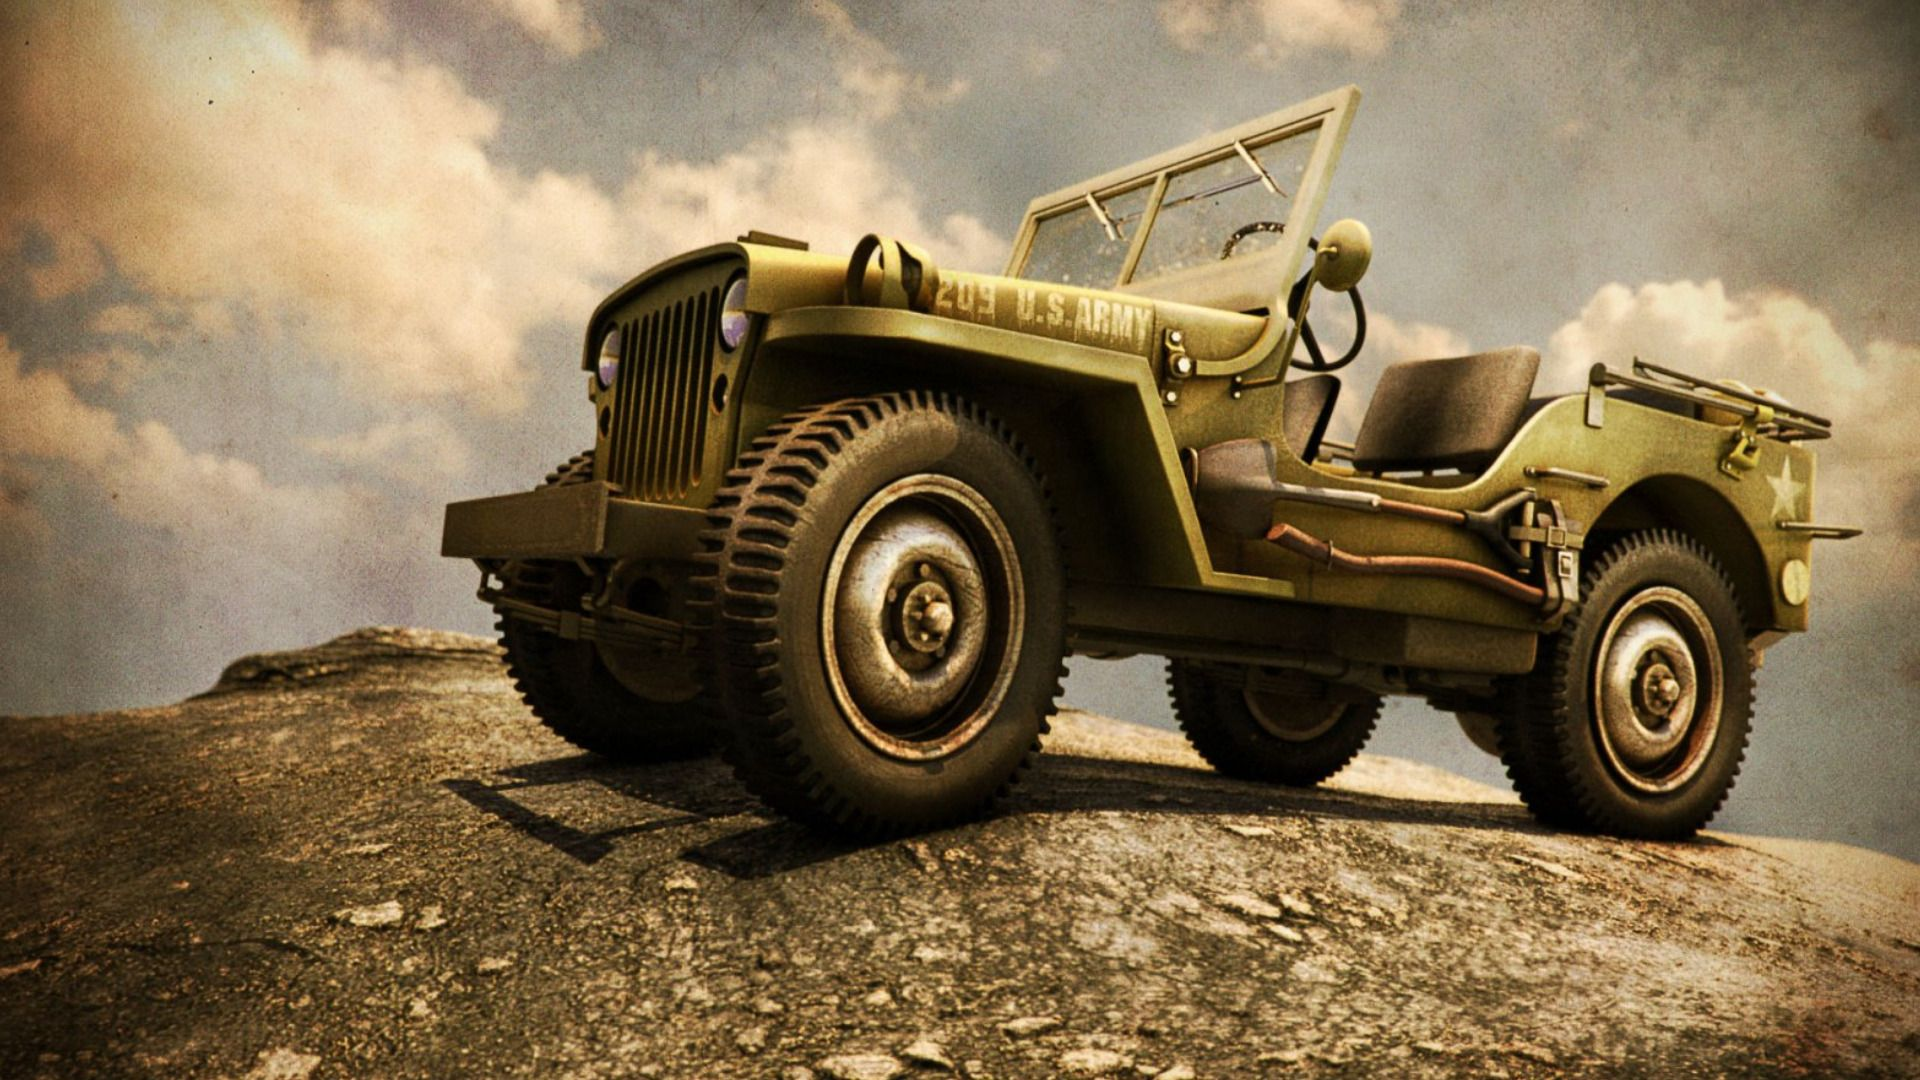 Us Army Jeep Wallpaper Willys Jeep Jeep Wallpaper Willys